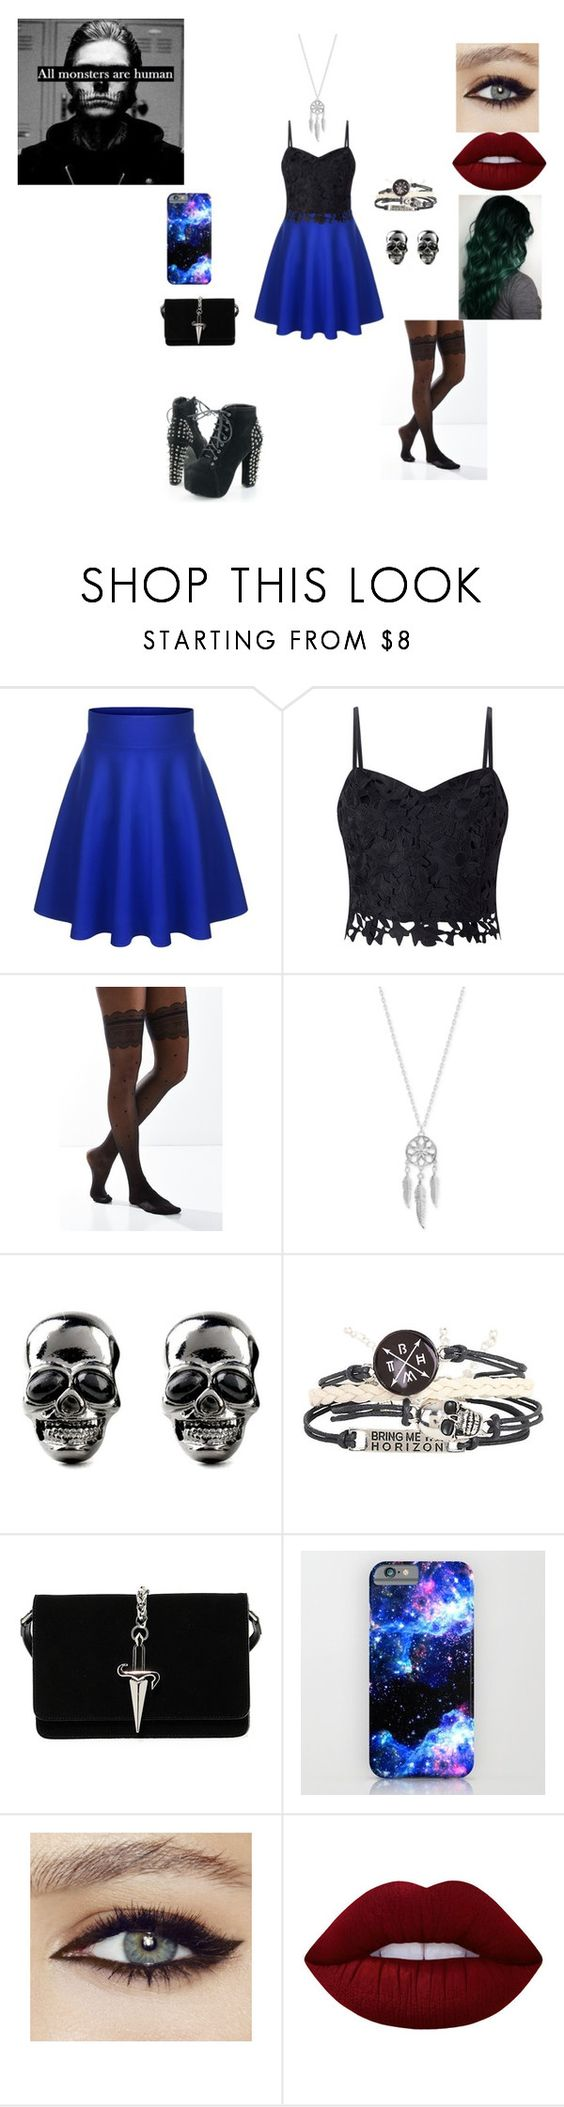 """""""Murder House"""" by pandababy-1 ❤ liked on Polyvore featuring Lipsy, Urban Outfitters, Lucky Brand, Cesare Paciotti, Lime Crime, americanhorrorstory, ahs, tatelangdon and murderhouse"""